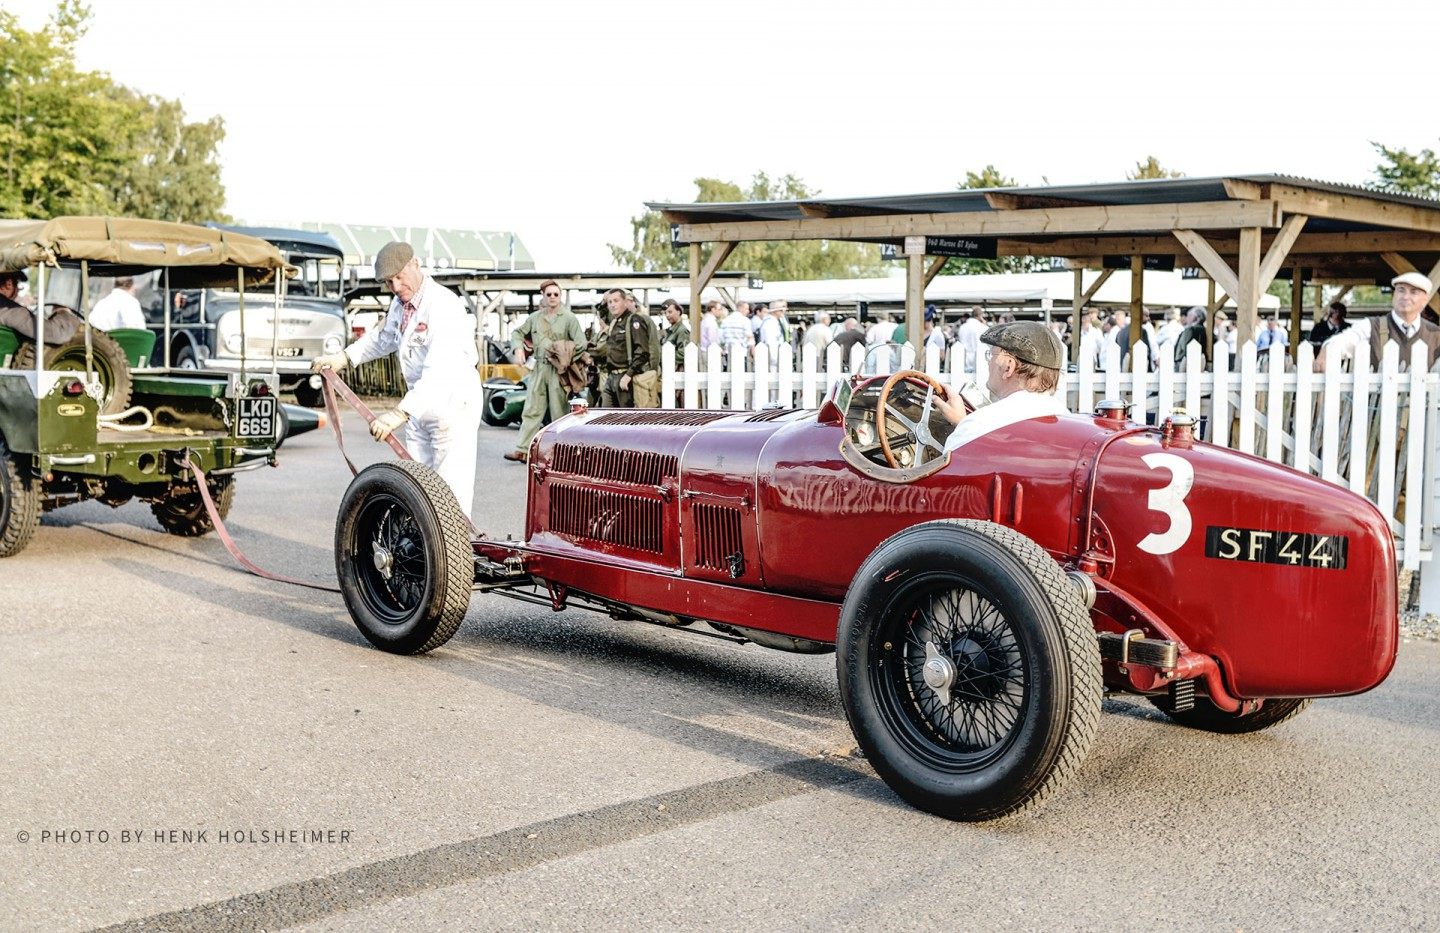 1934 Alfa Romeo Tipo B, Goodwood Revival 2014